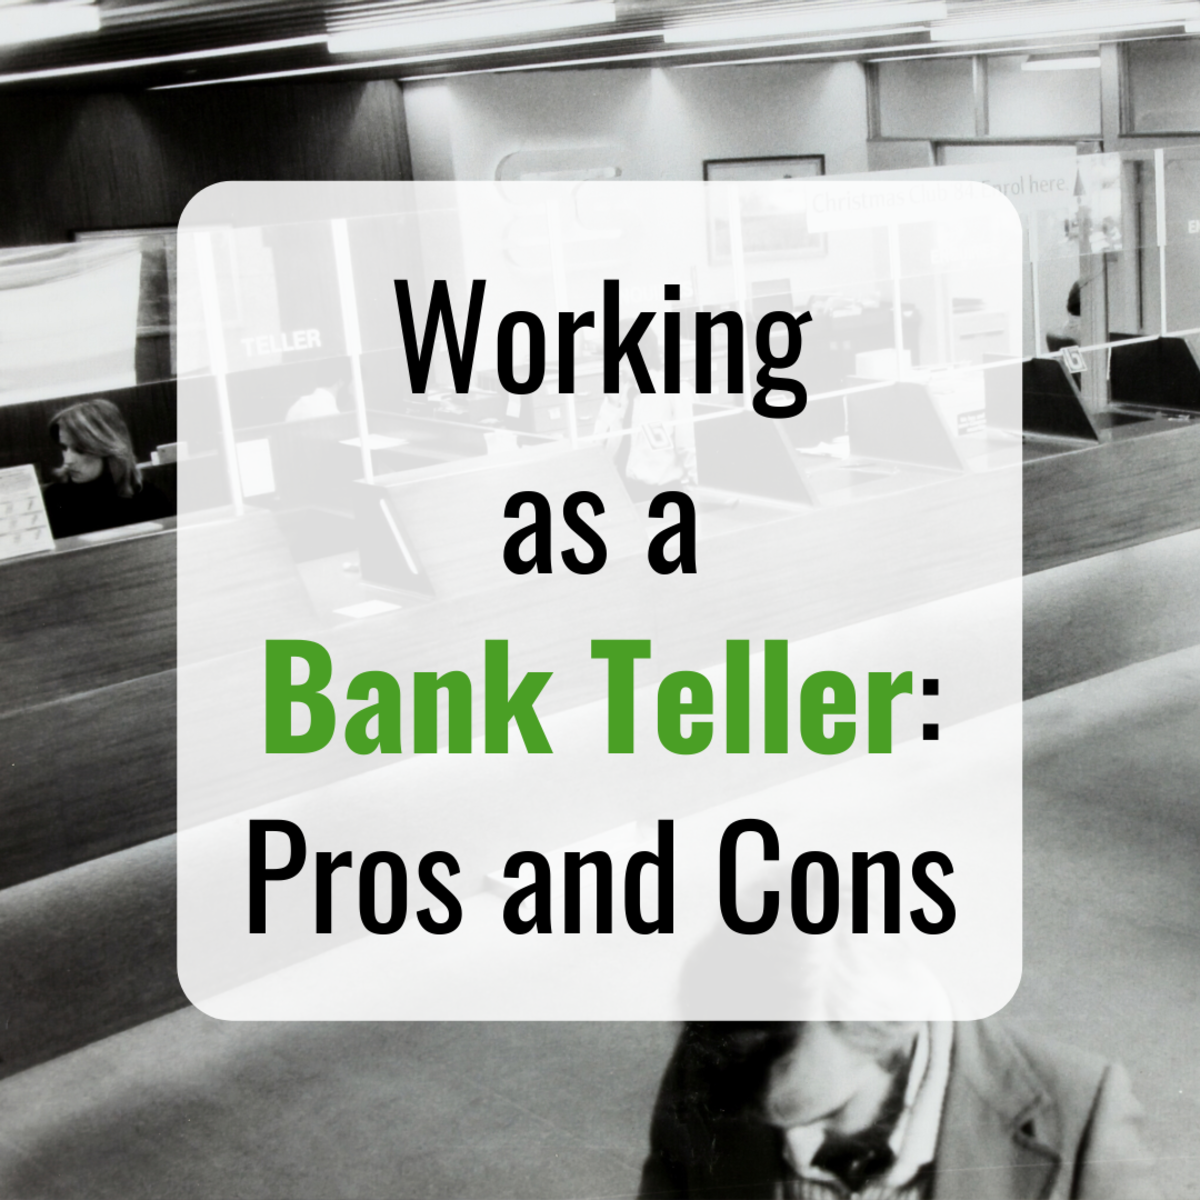 Learn about the career of a bank teller, including pros and cons, job duties, career path, and more.